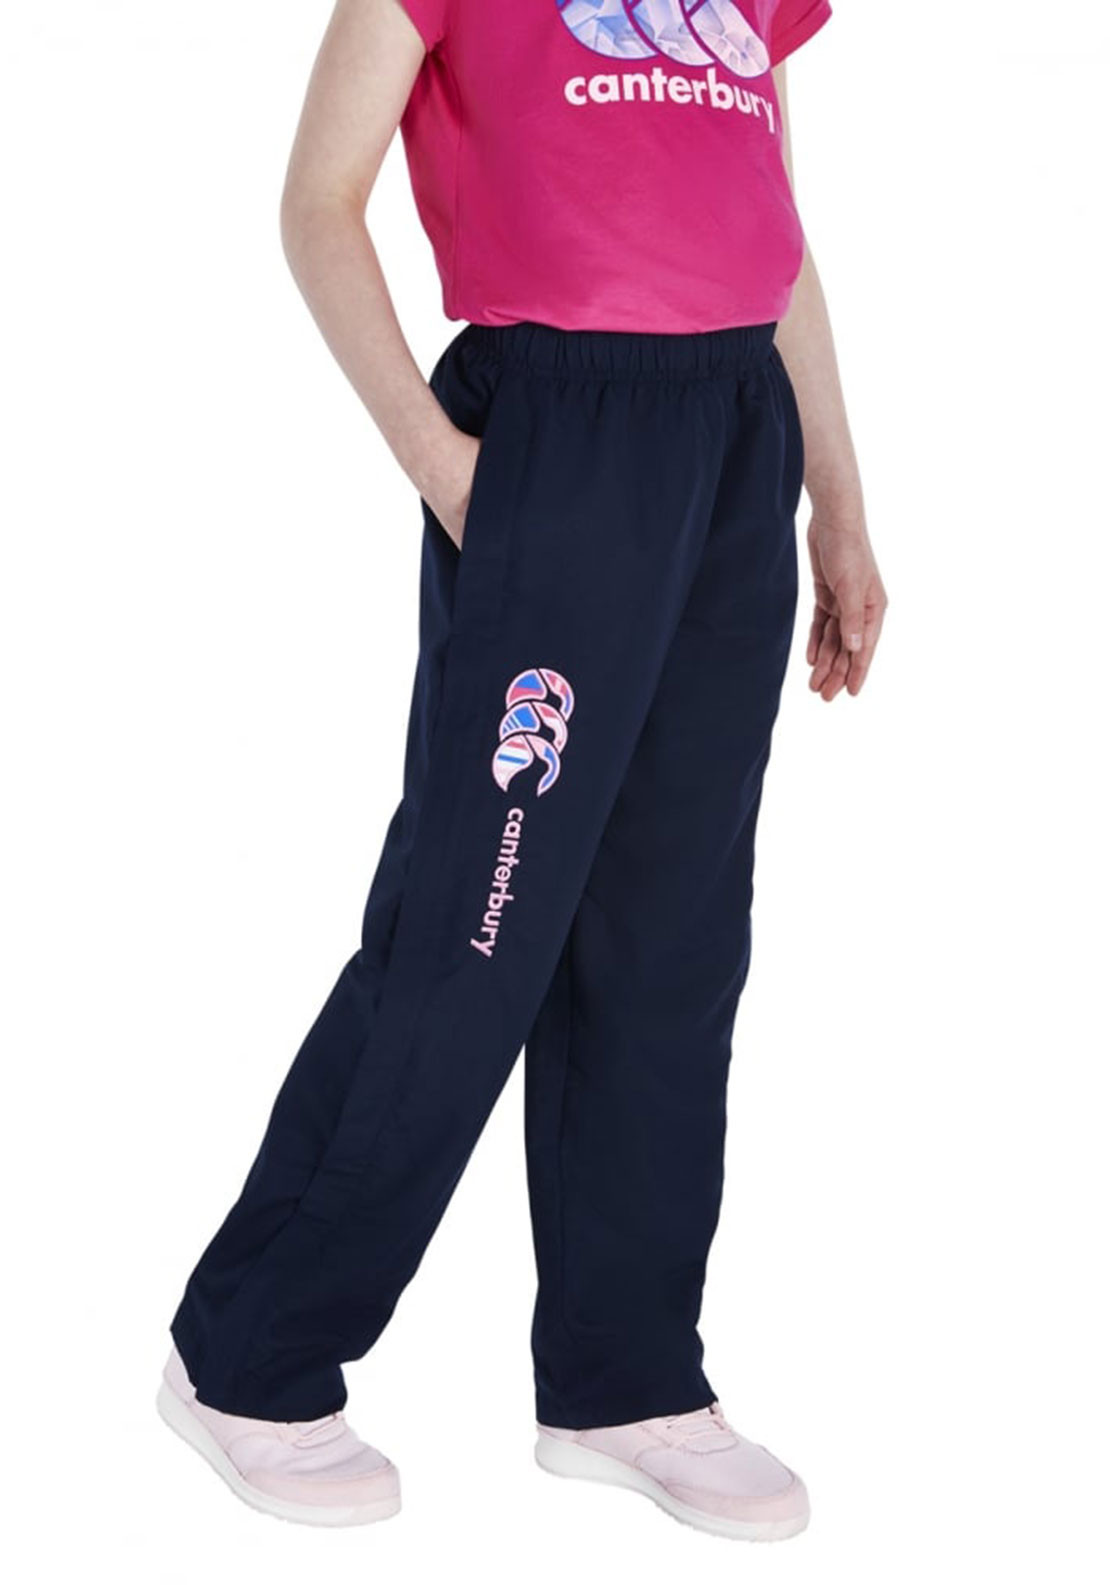 Canterbury Girls Uglies Stadium Pants, Navy and Pink